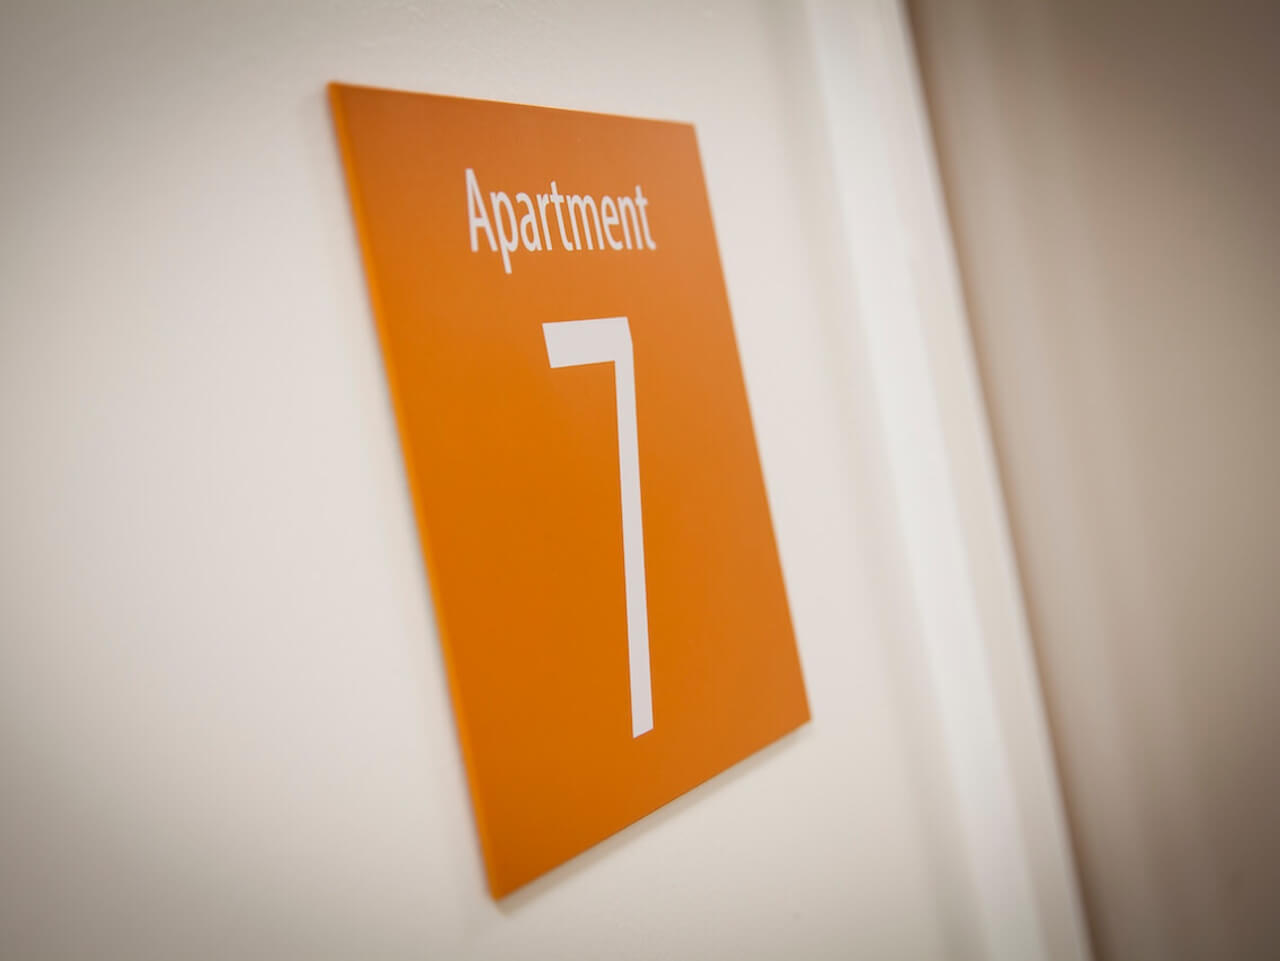 A sign showing the number of an apartment next to its entrance